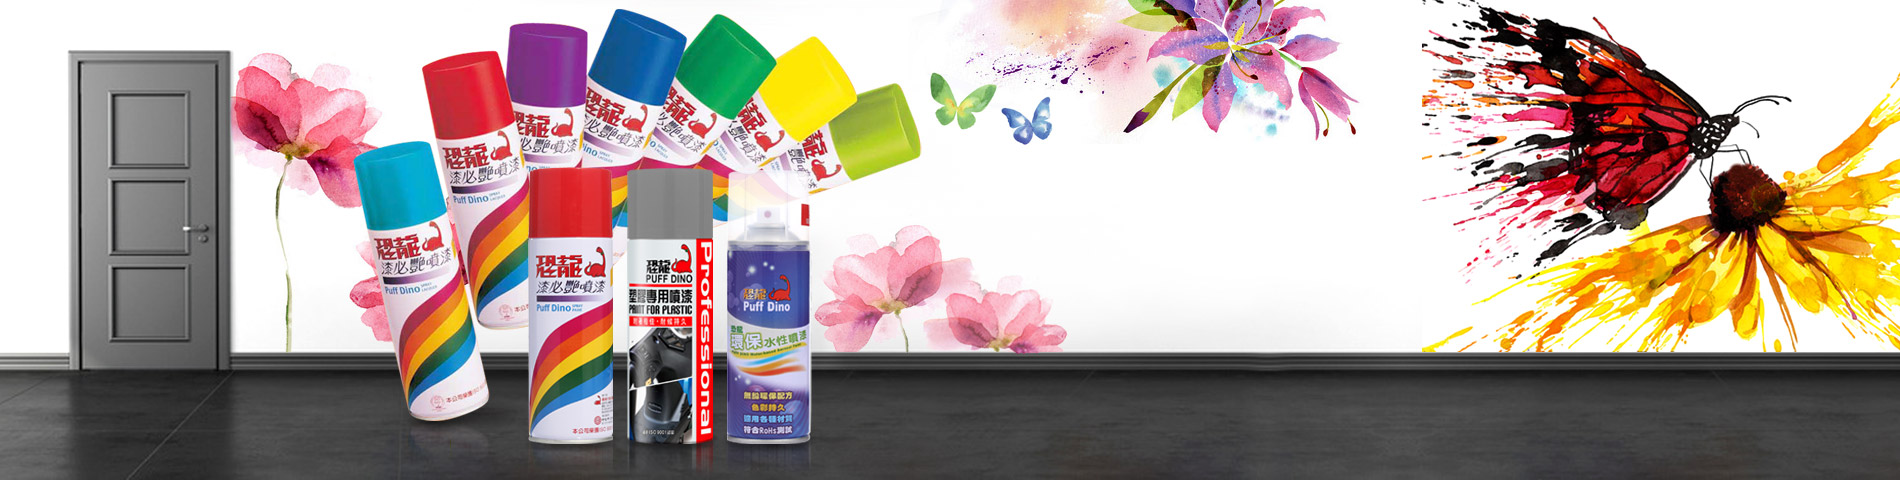 PUFF DINO Spray Paint Outstanding Quality. Totally Made In Taiwan.